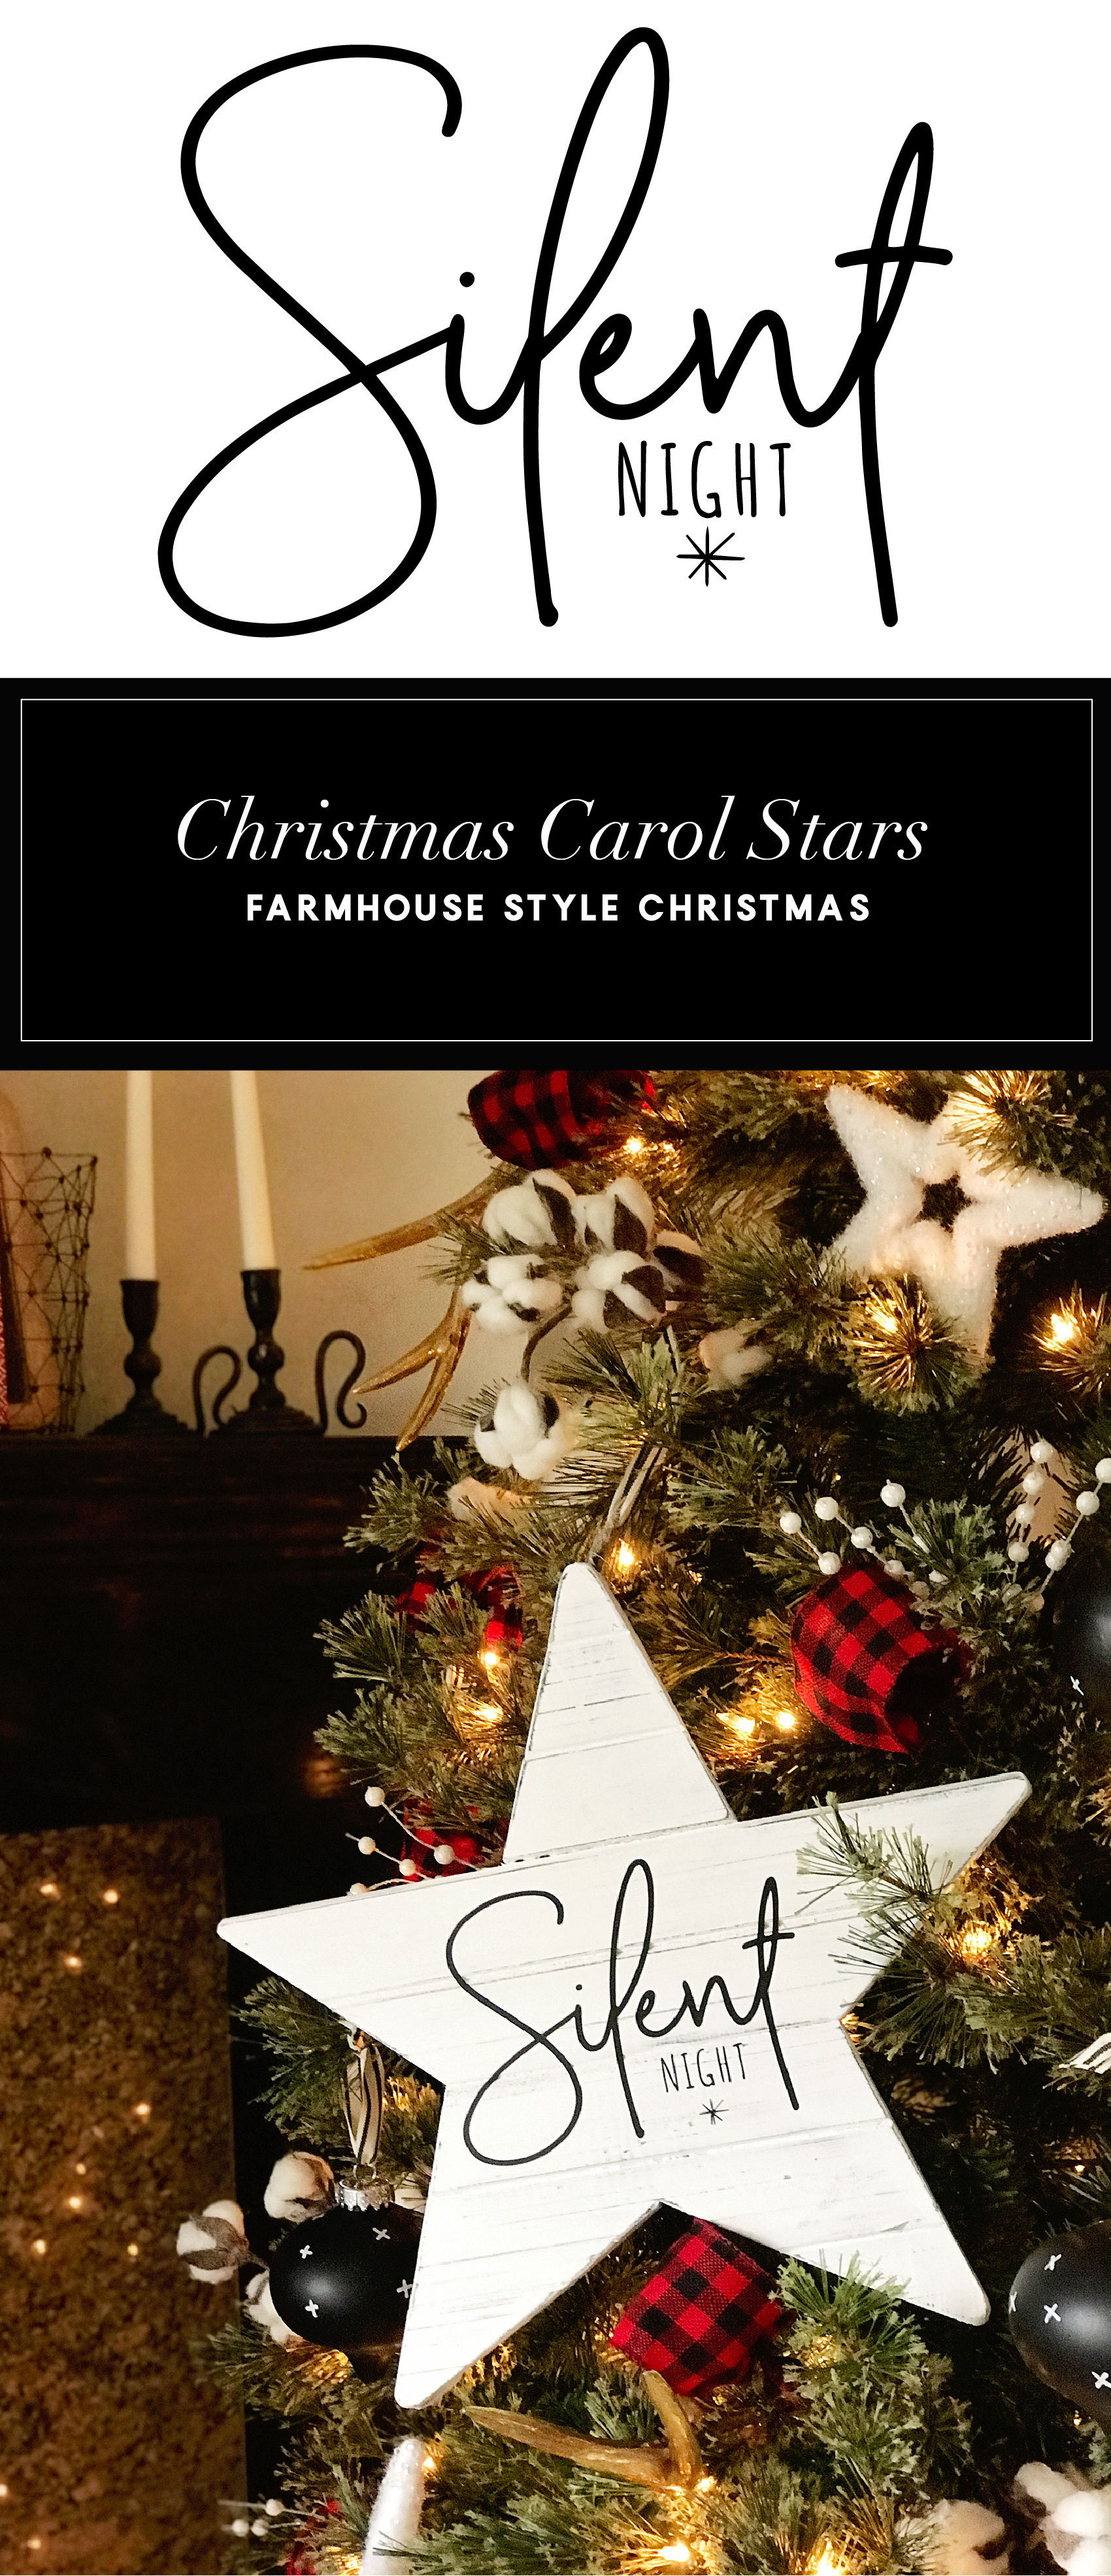 Create your own farmhouse Christmas decorations with a little help from WhipperBerry - Christmas Carol Stars